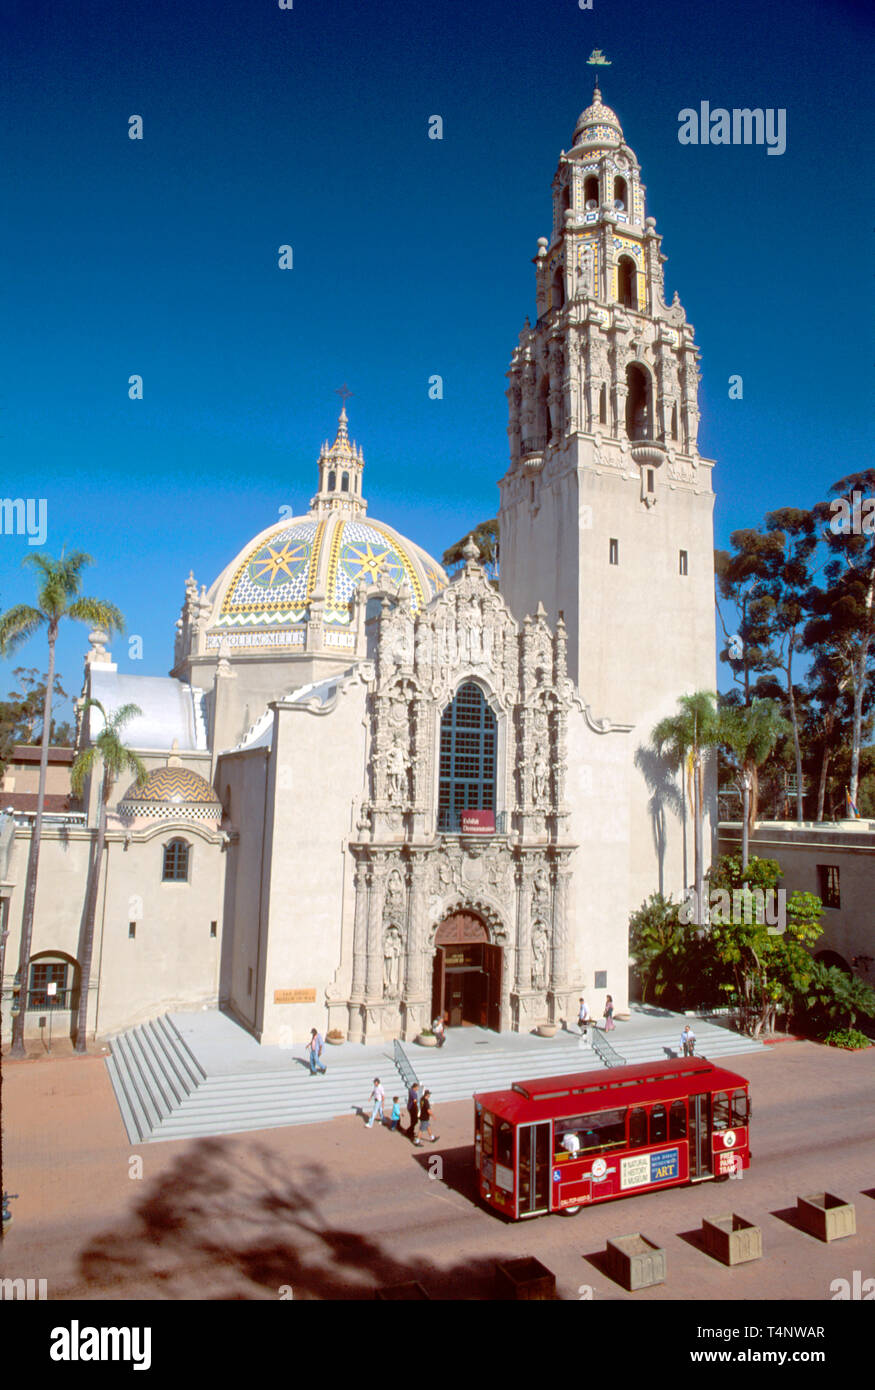 California San Diego Balboa Park built for Exposition Museum of Man passing tour trolley - Stock Image